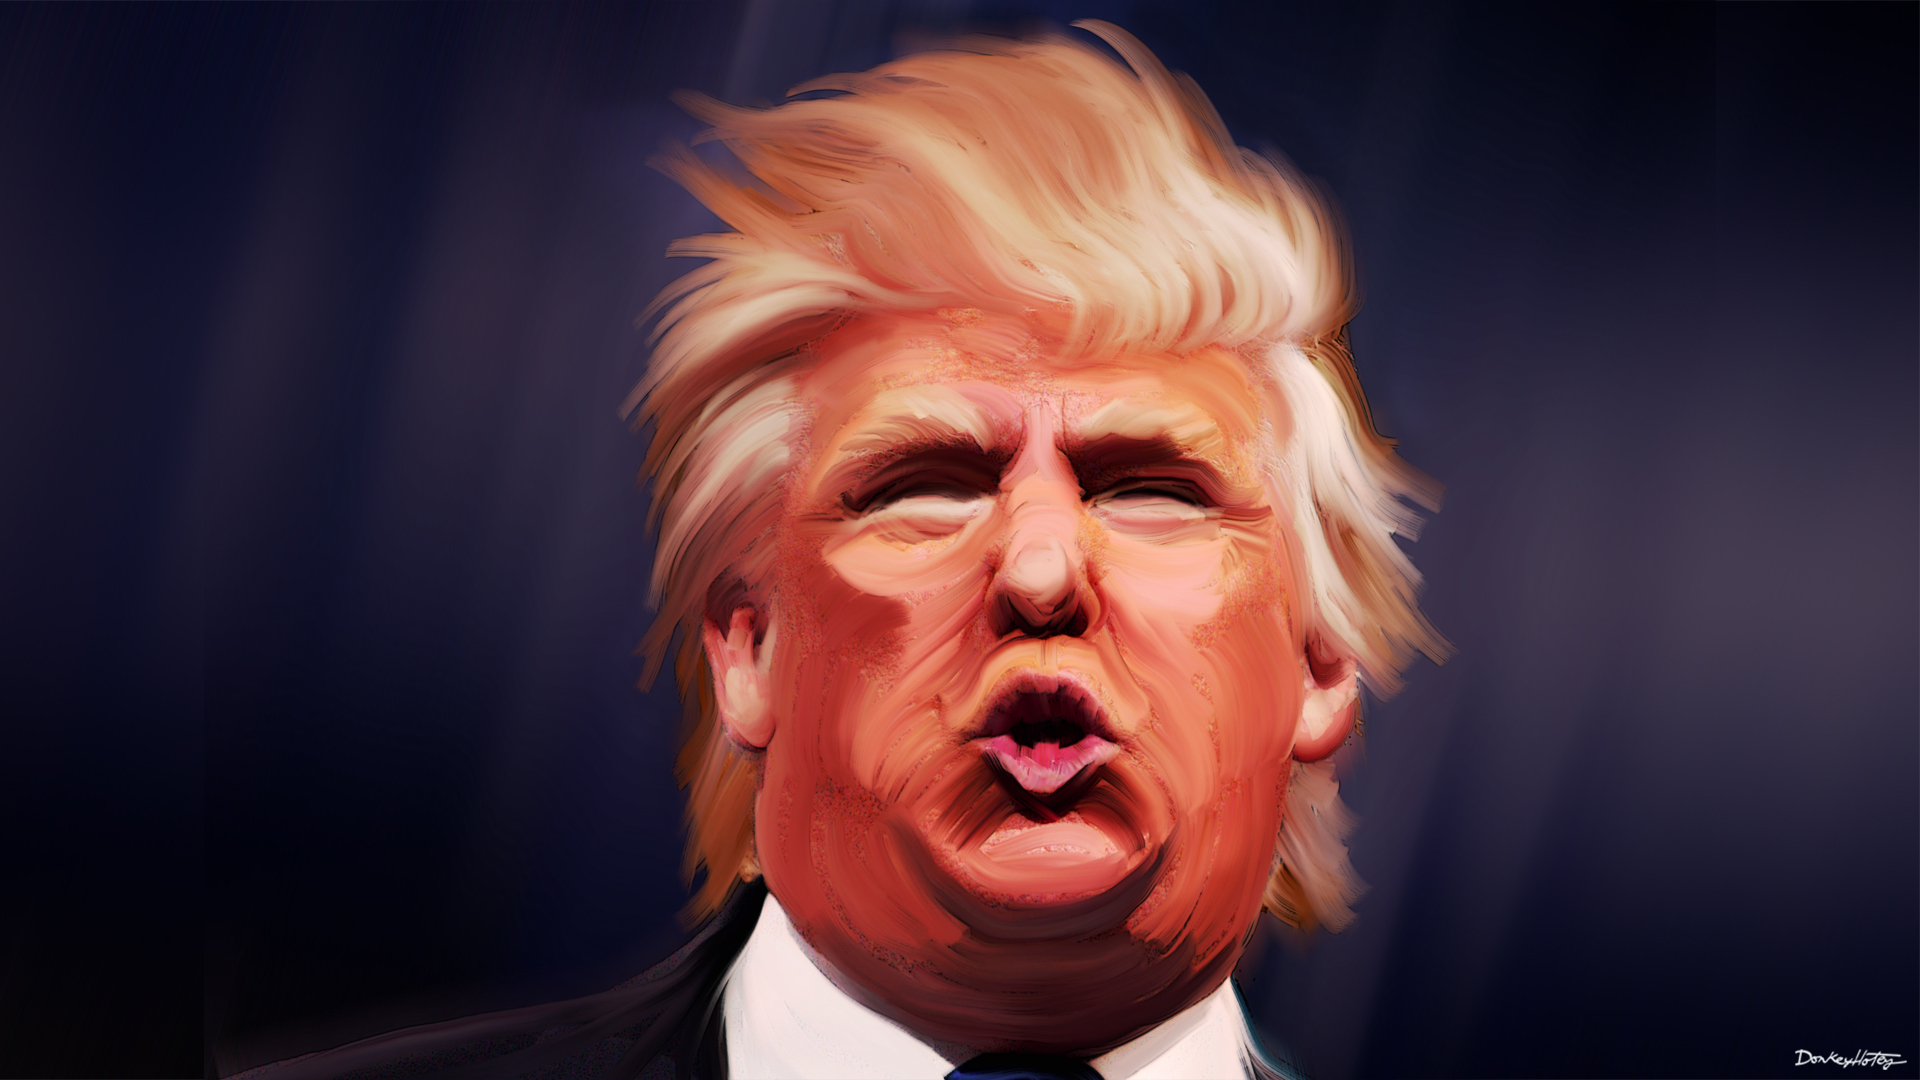 Donald_Trump_Caricature_by_DonkeyHotey CC BY-SA 2_0